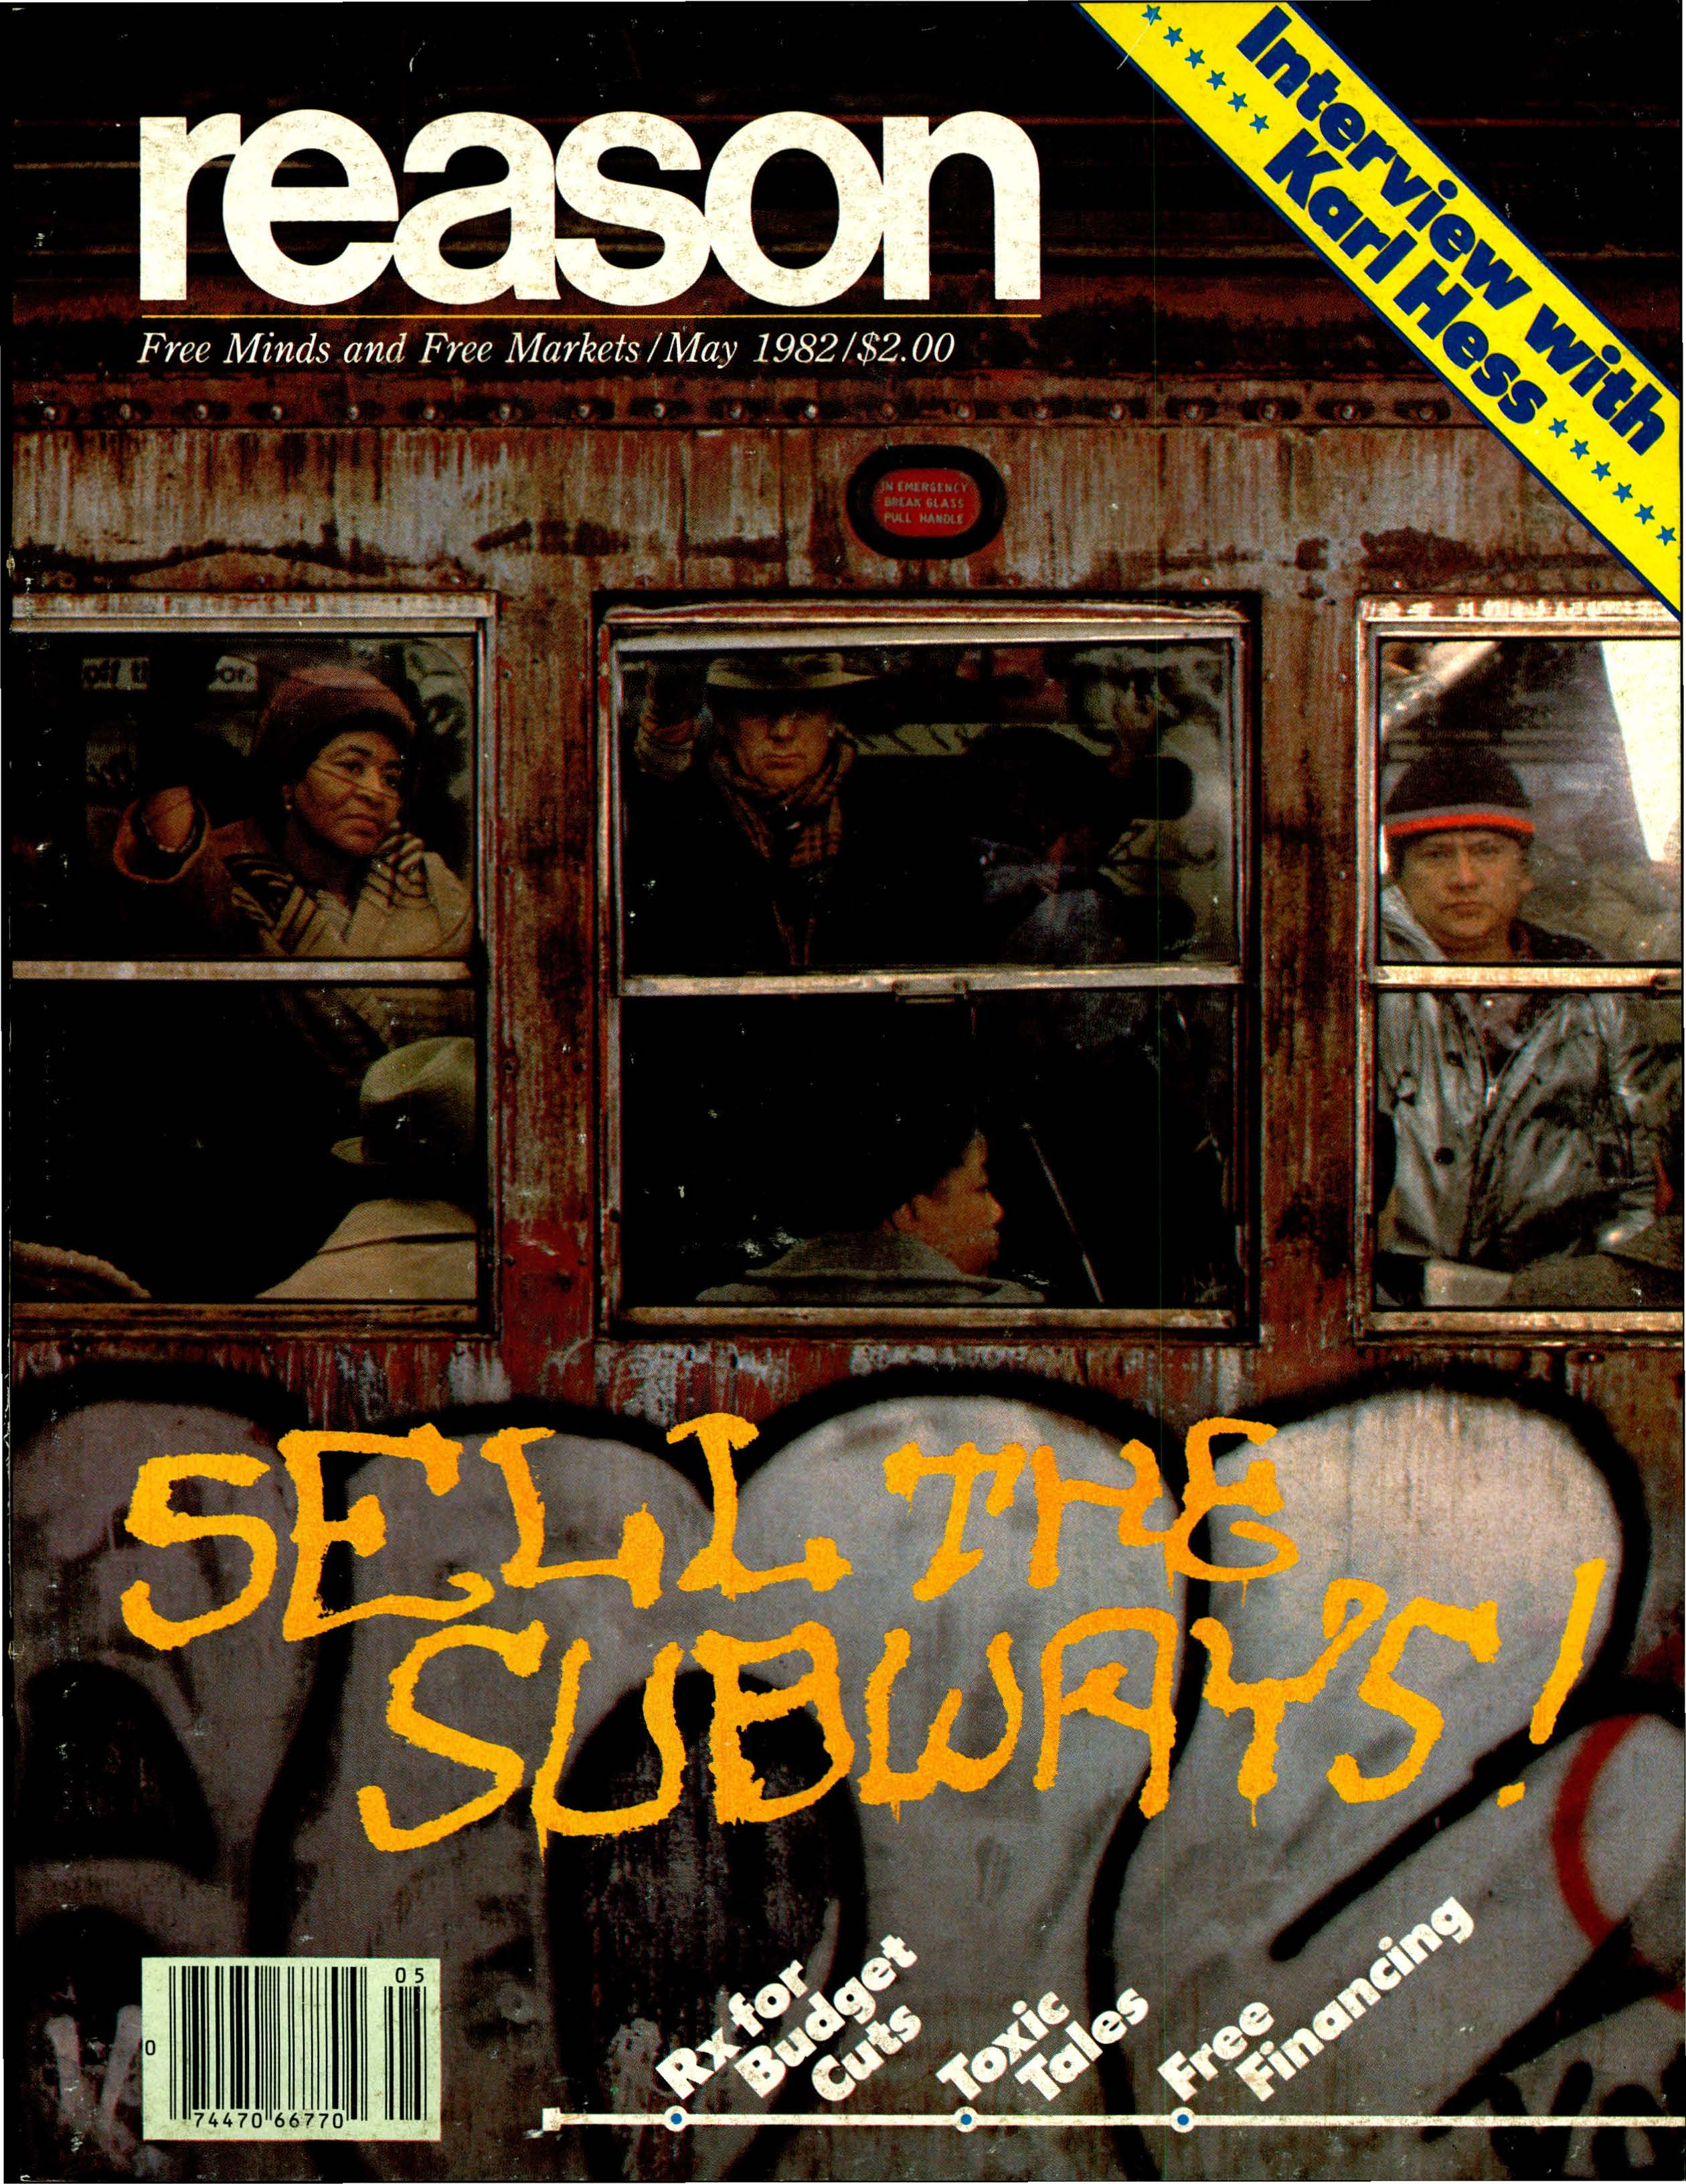 Reason Magazine, May 1982 cover image